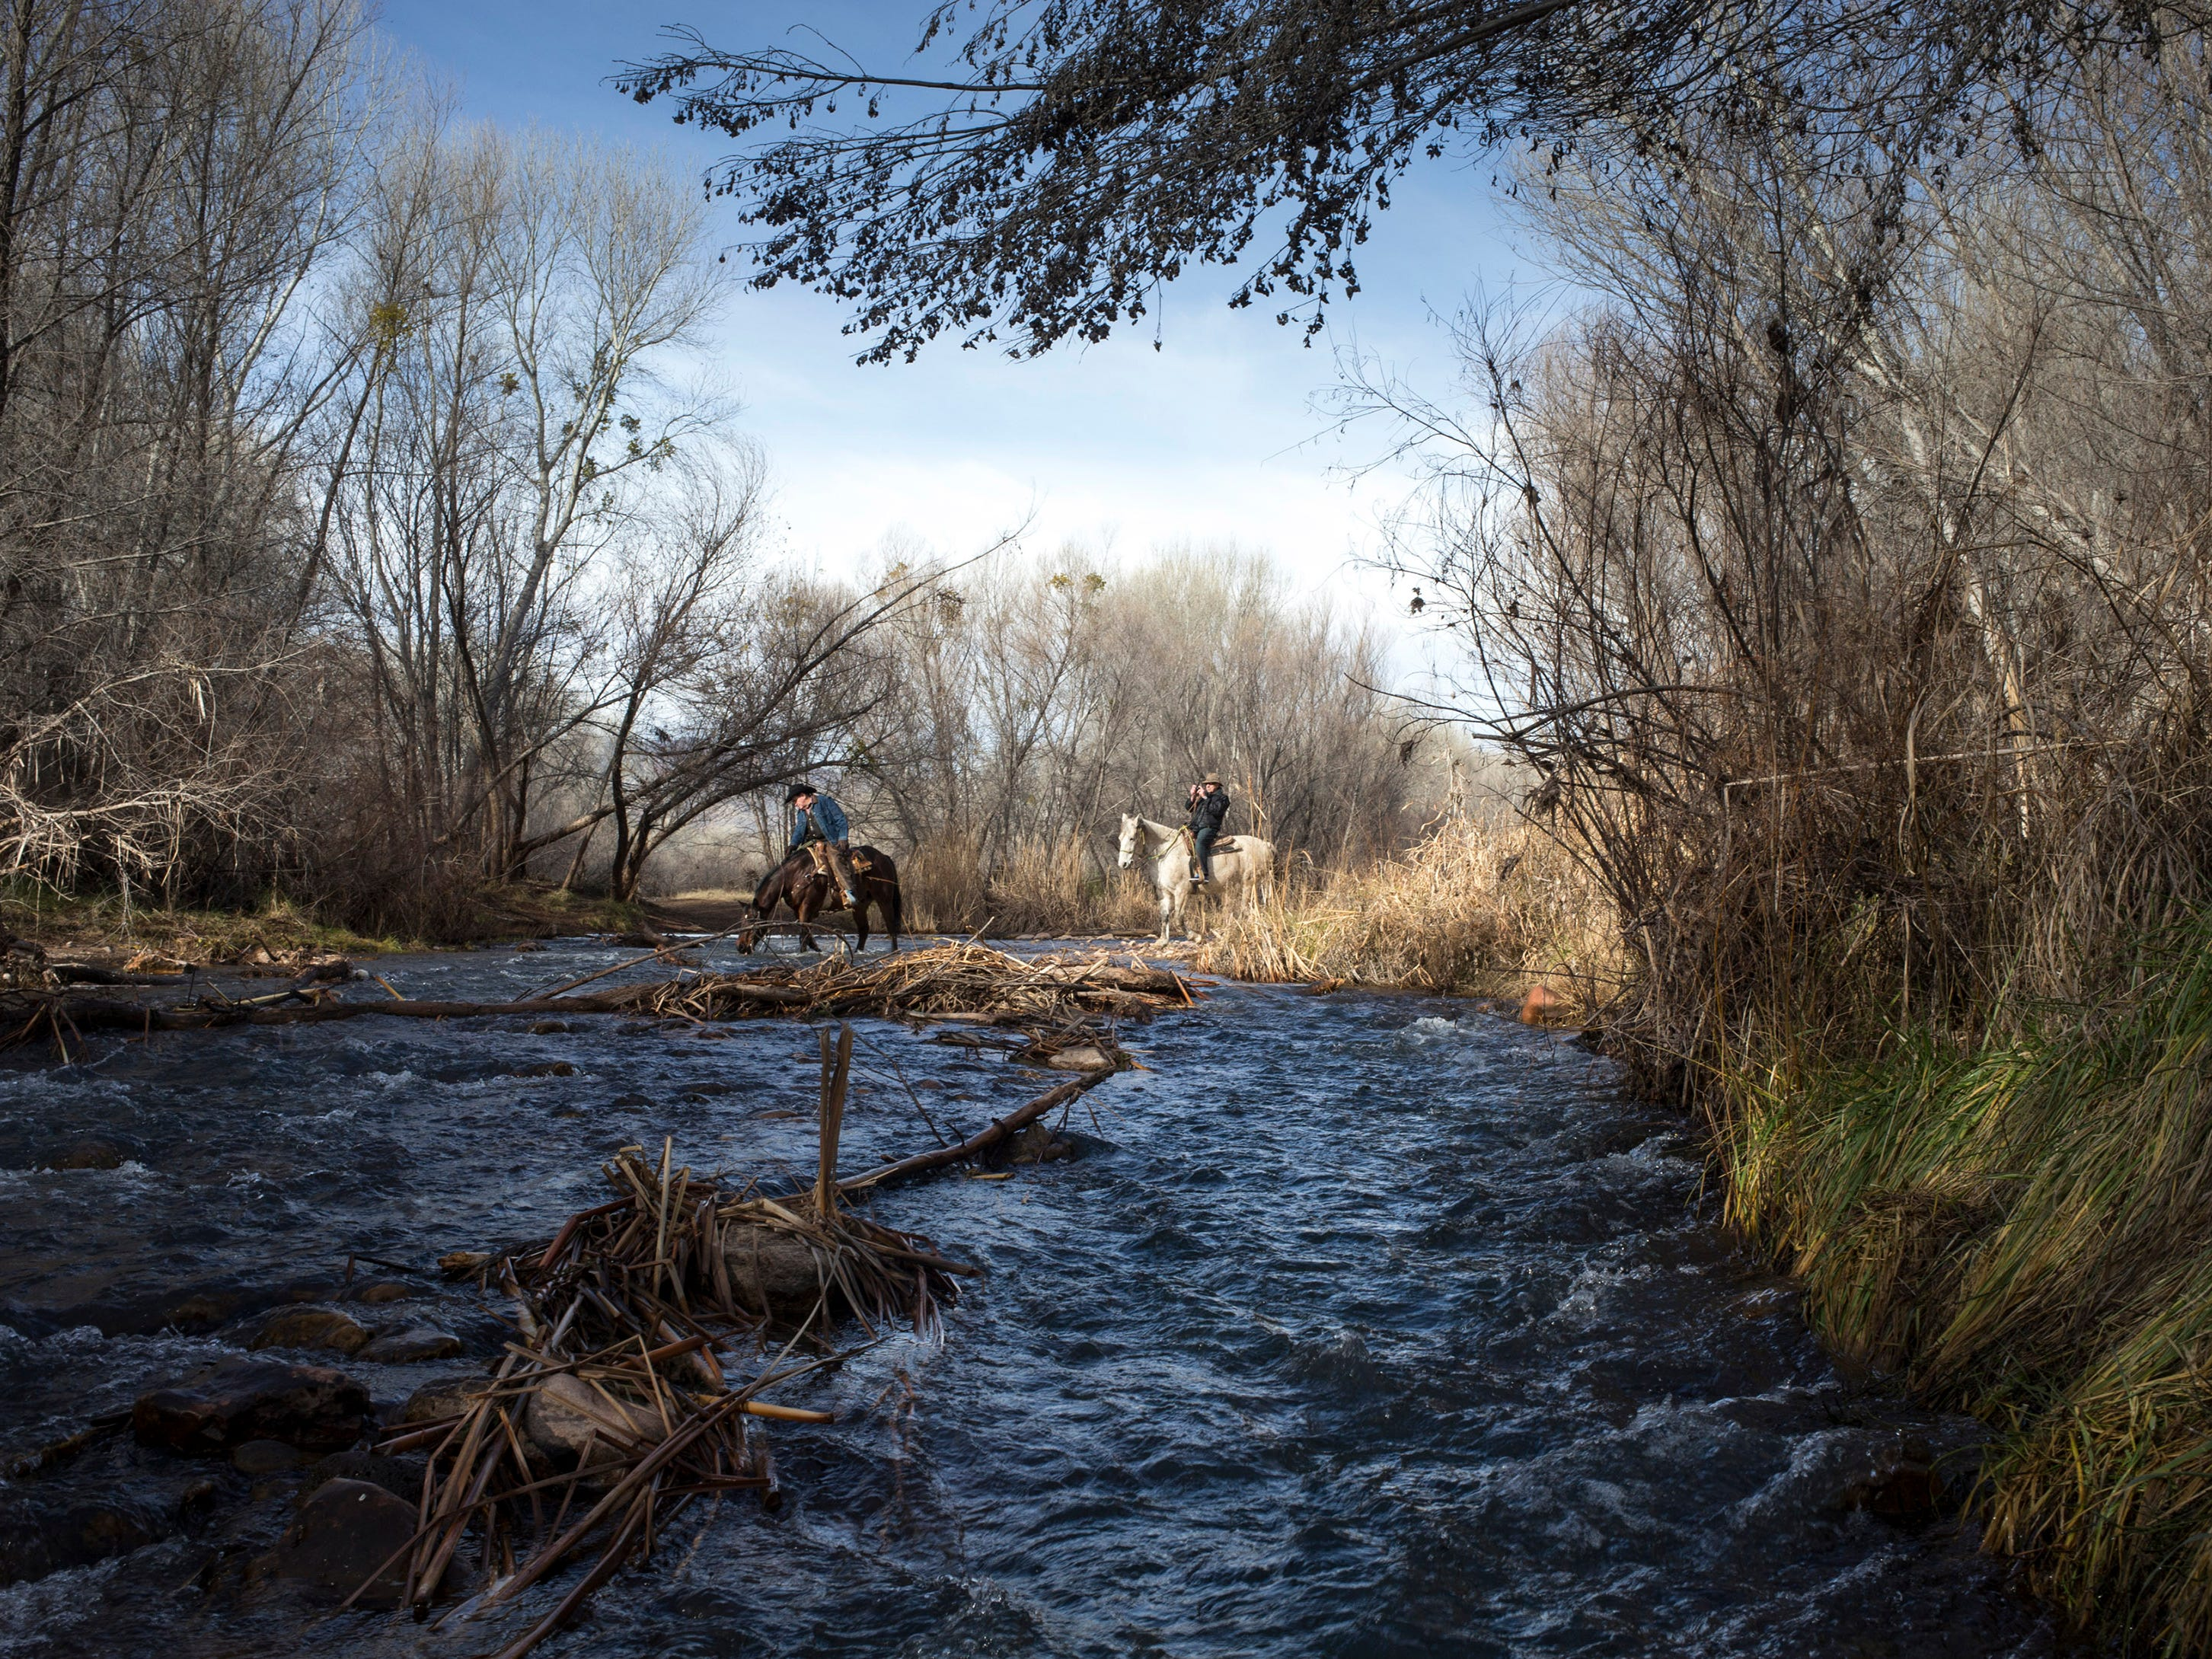 Jerry Couture (right) photographs Trail Horse Adventures guide Wild Bill Jones as they cross the Verde River, January 19, 2016, in Dead Horse Ranch State Park,675 Dead Horse Ranch Road, Cottonwood, Arizona.